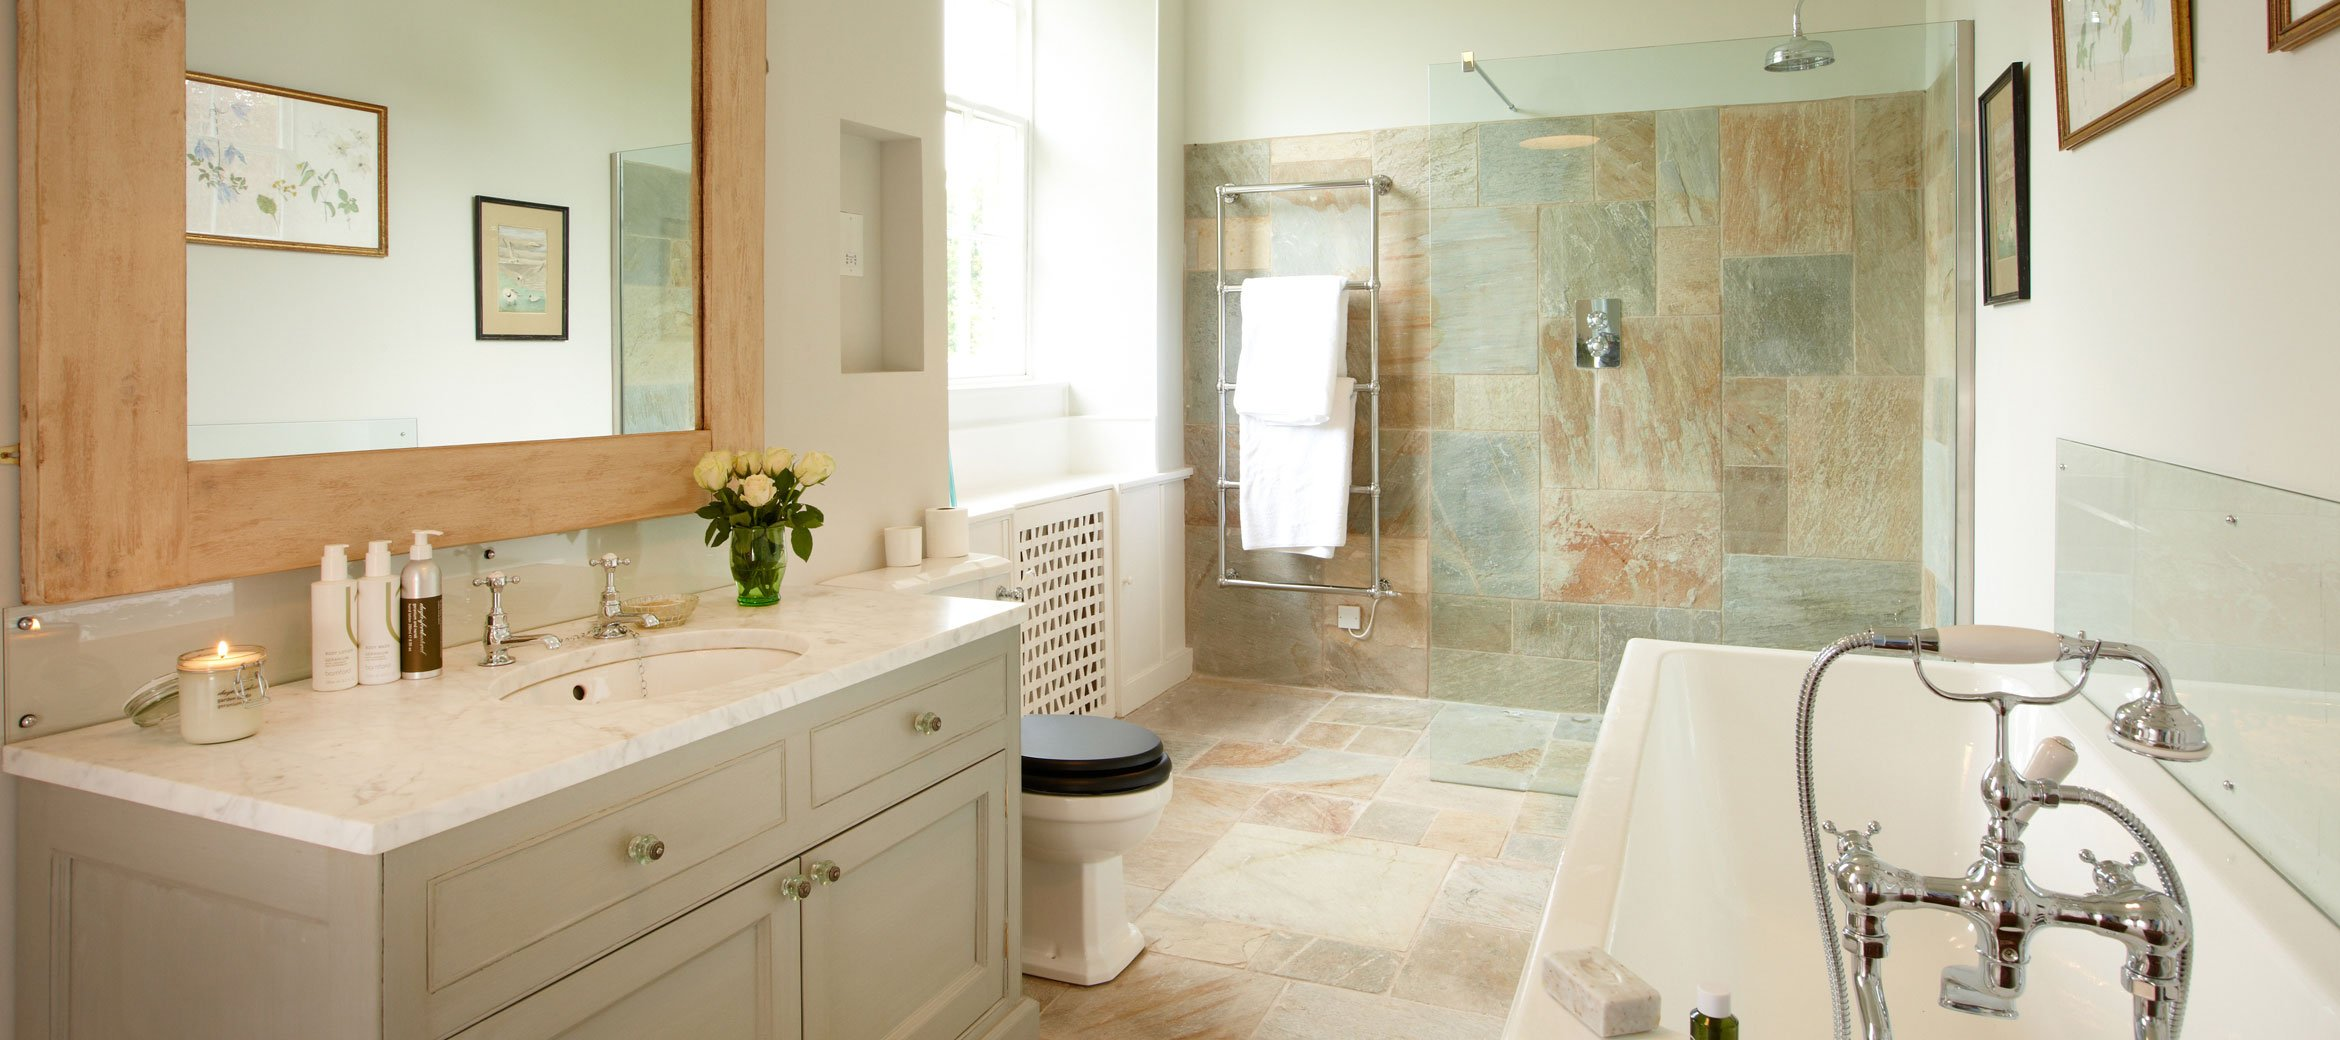 Cornwell-manor-ensuite-bathroom